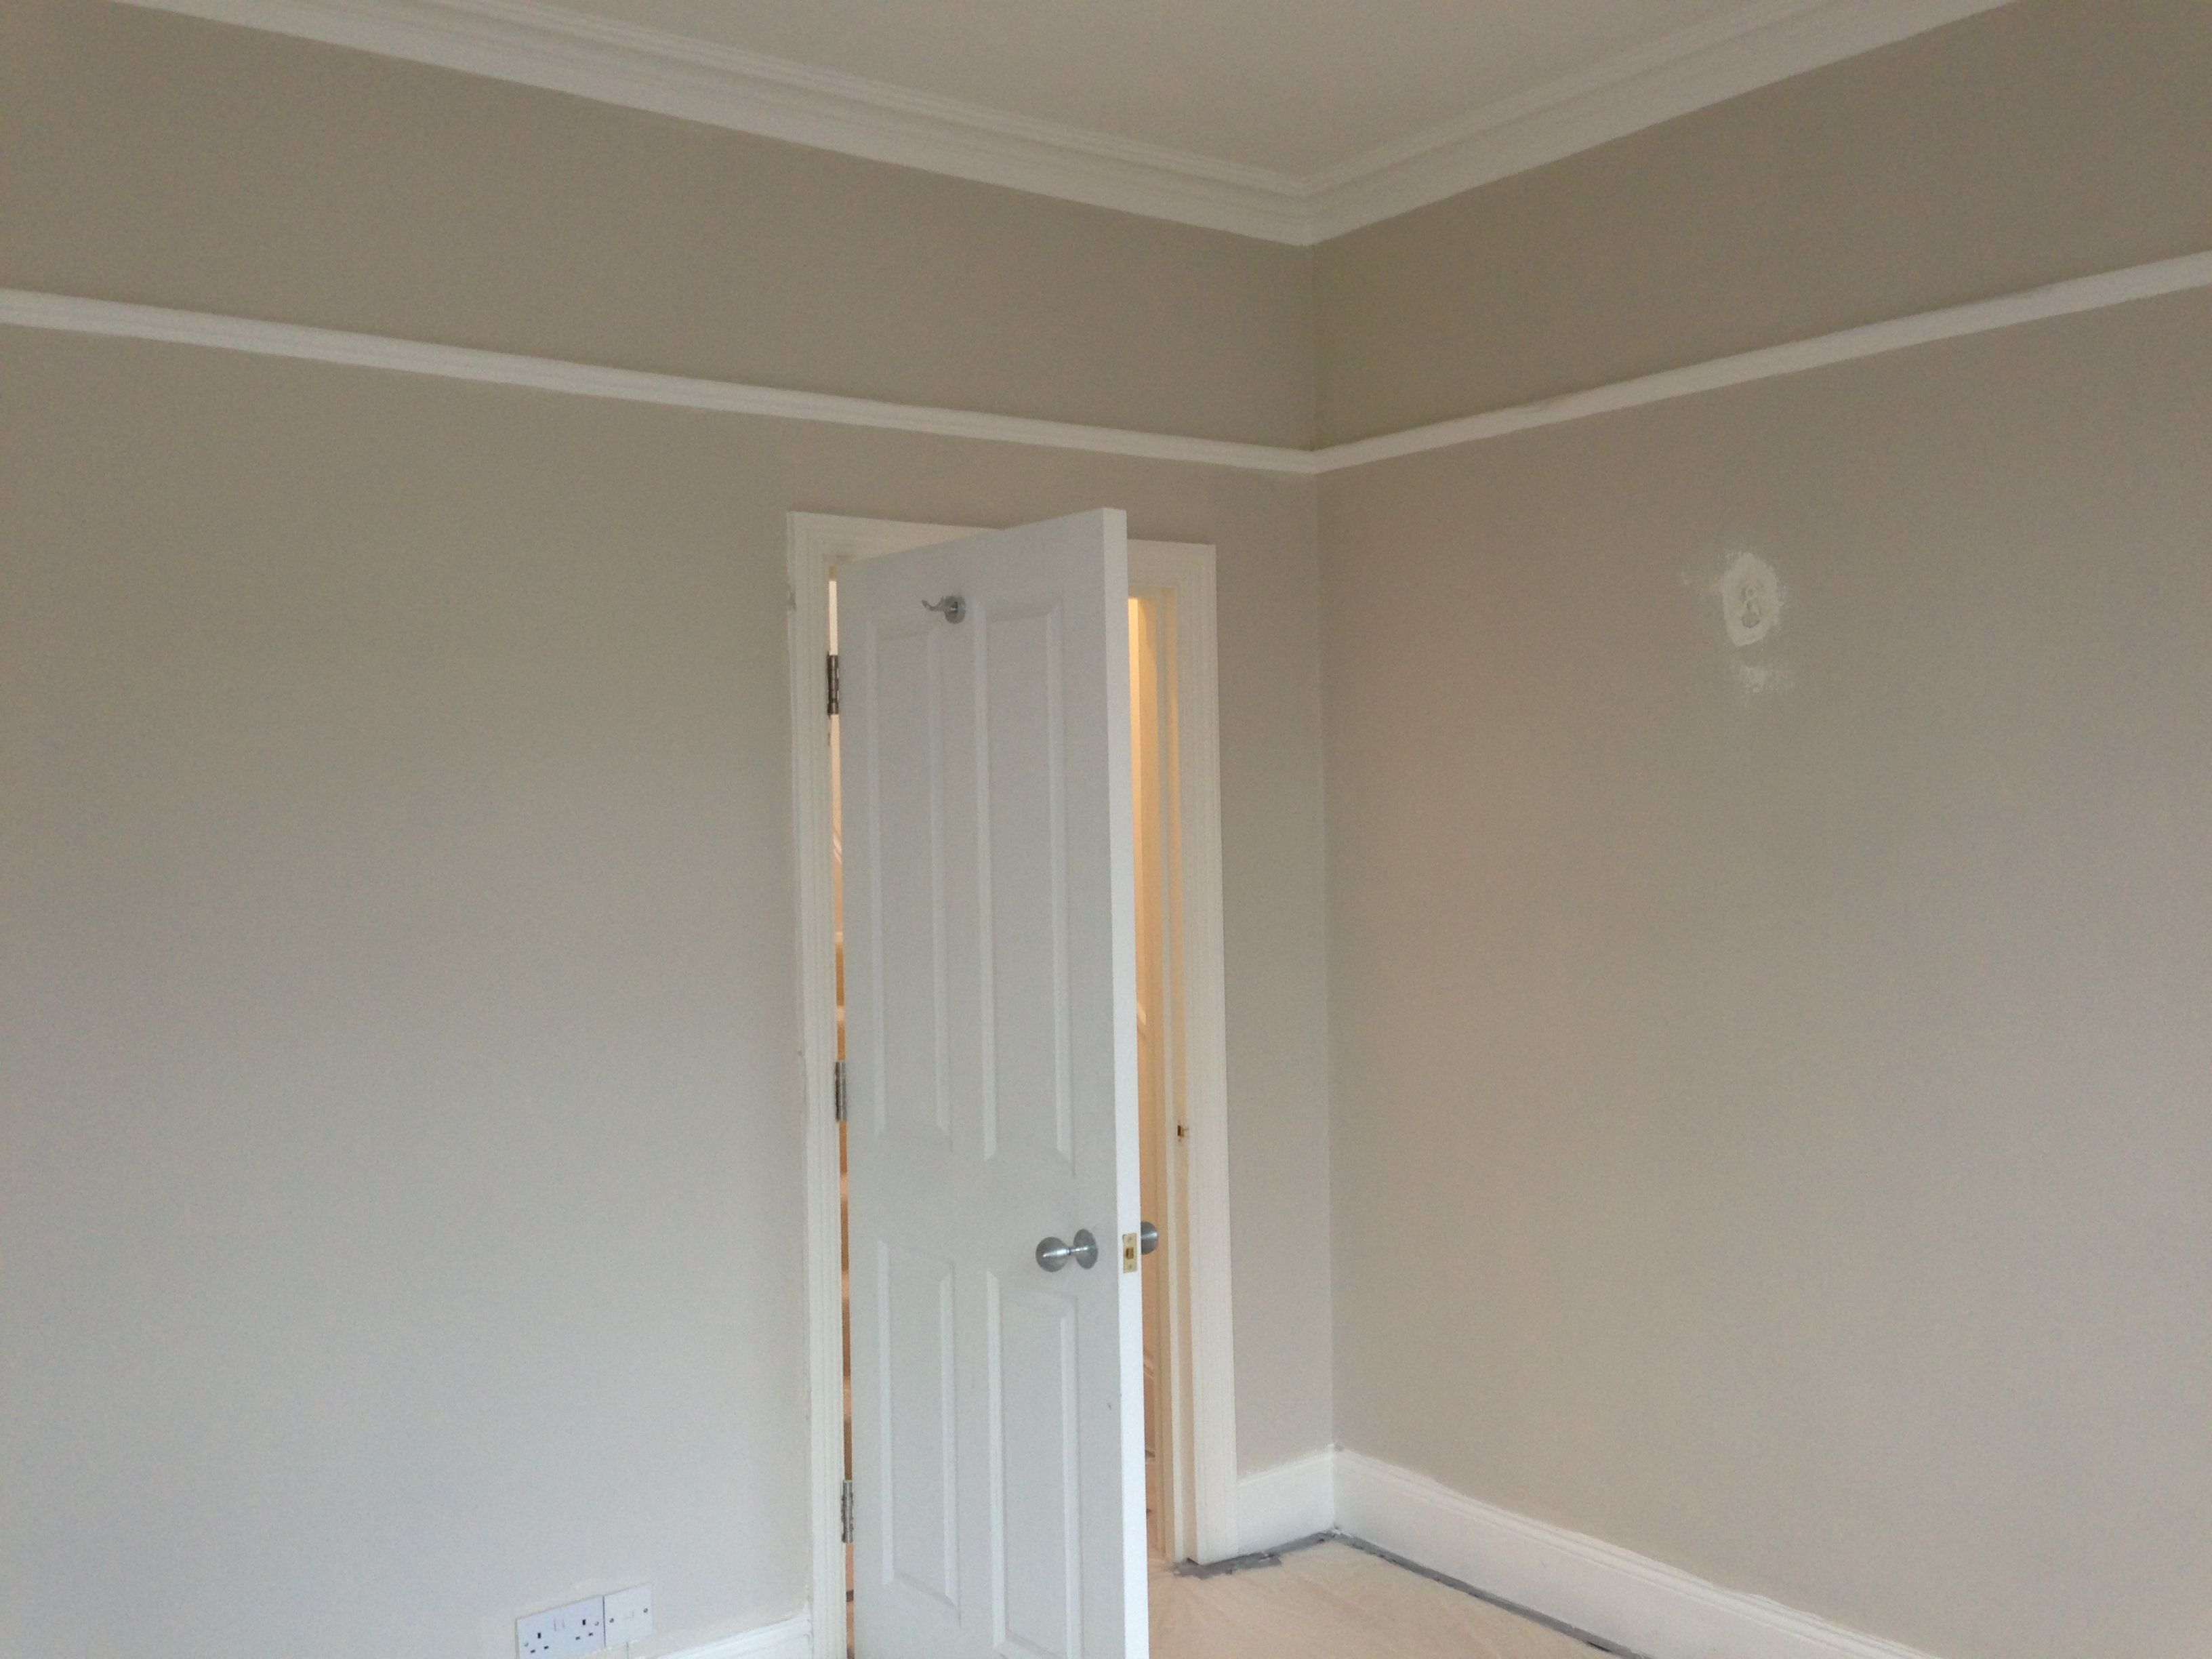 Skimming stone farrow and ball came out way too beige and Farrow and ball skimming stone living room